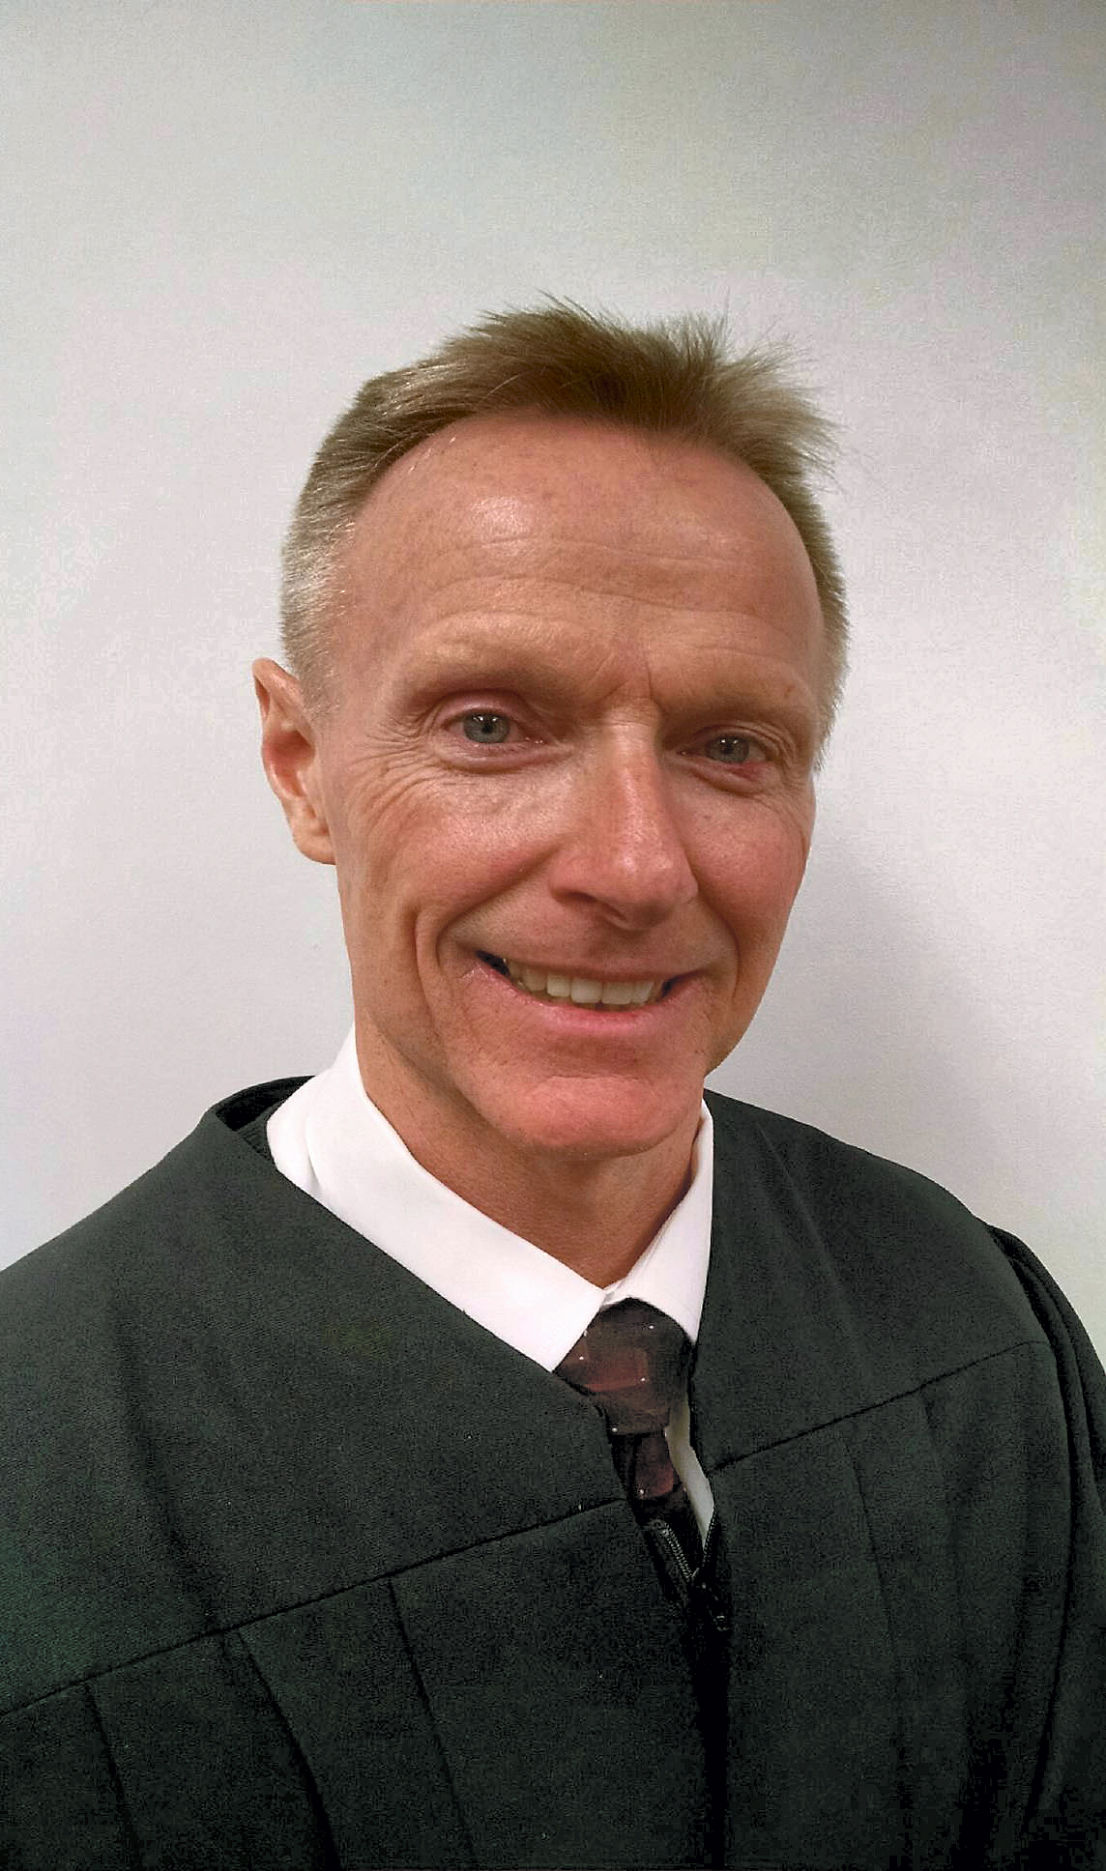 Sarpy County District Judge Max Kelch appointed to Nebraska Supreme Court